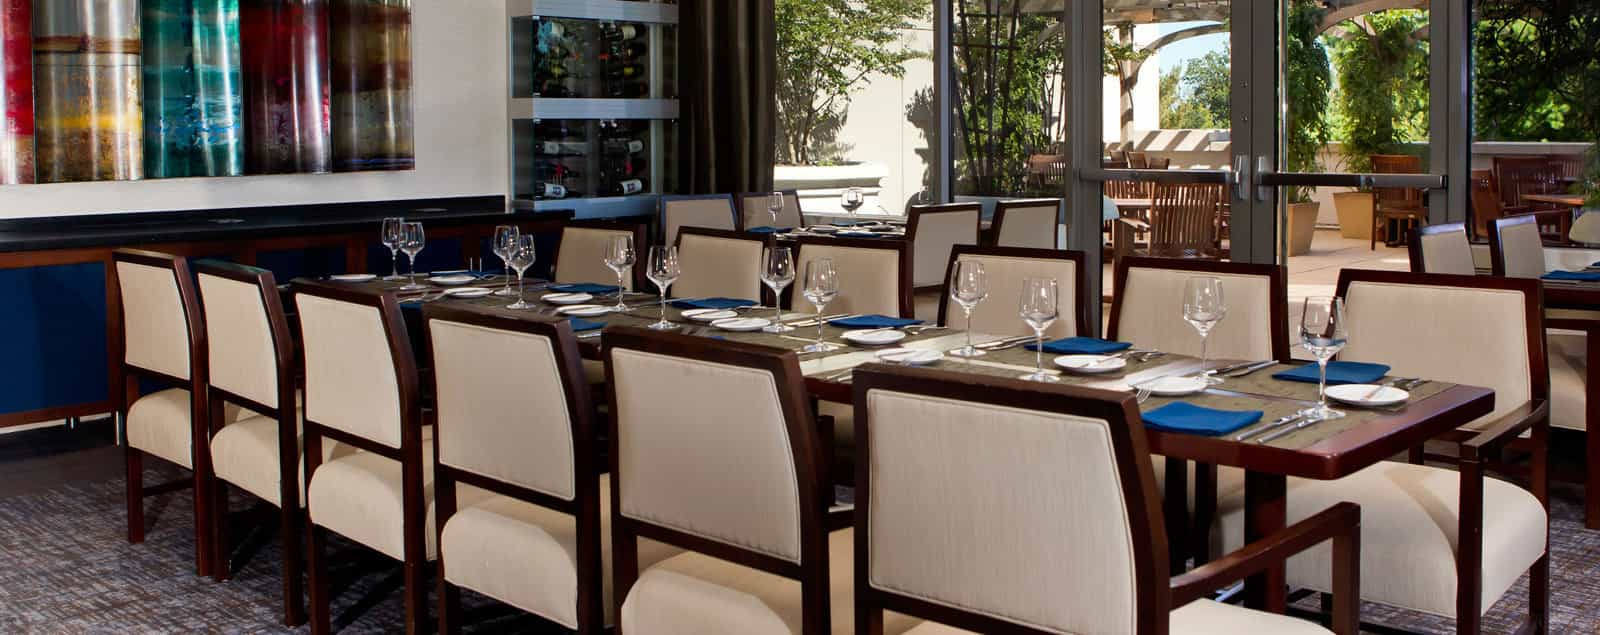 Restaurants In Northern Va With Private Rooms